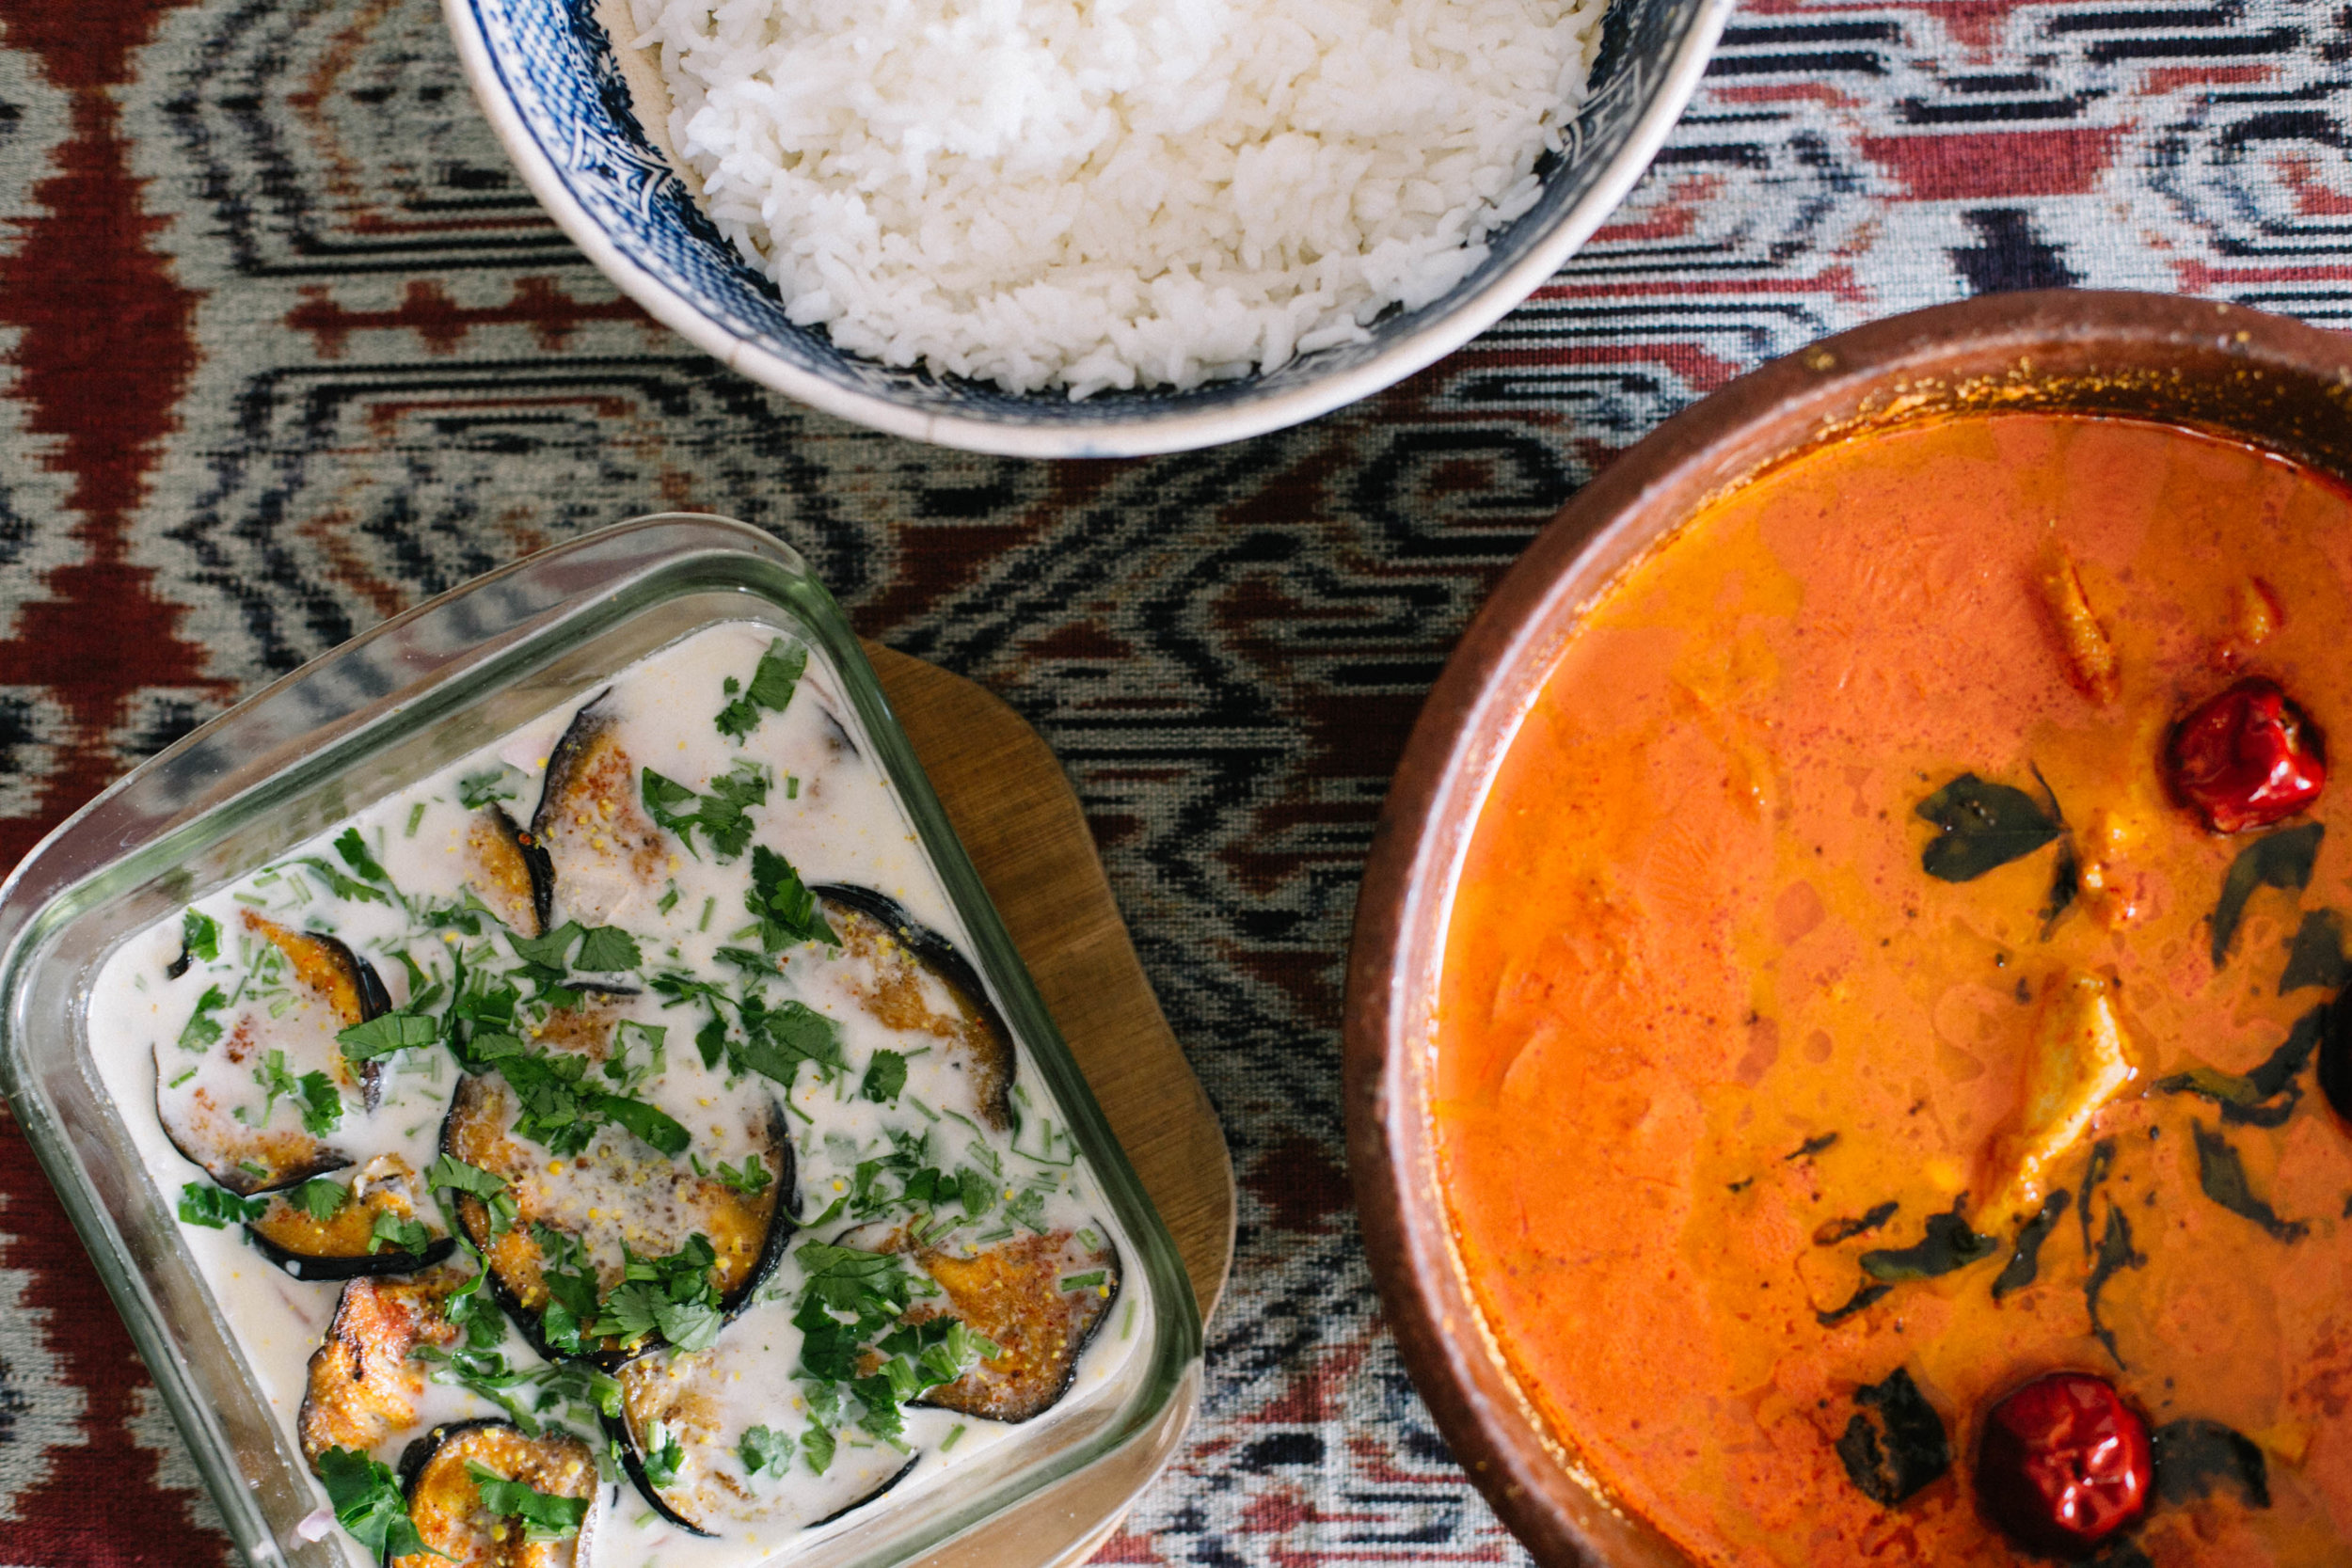 Jenny Pinto cooks Mangalore fish curry and brinjal in coconut milk for #1000Kitchens